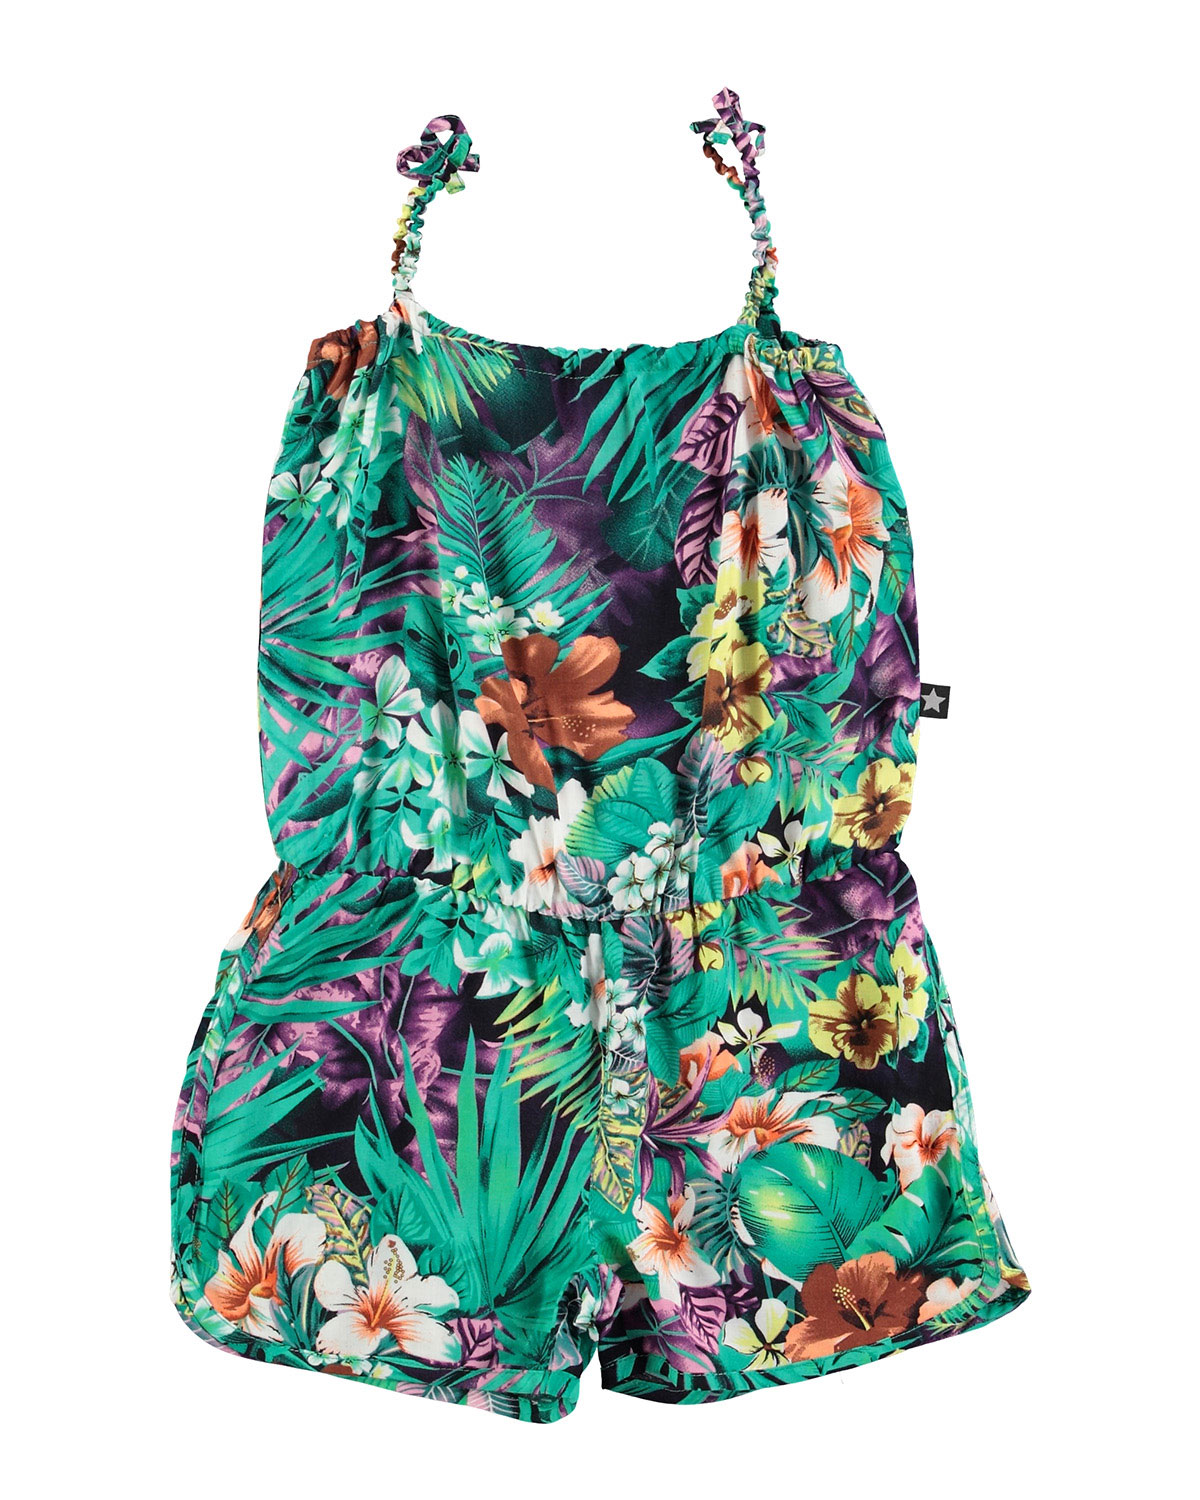 Sleeveless Floral Stretch Romper, Turquoise, Size 3-14